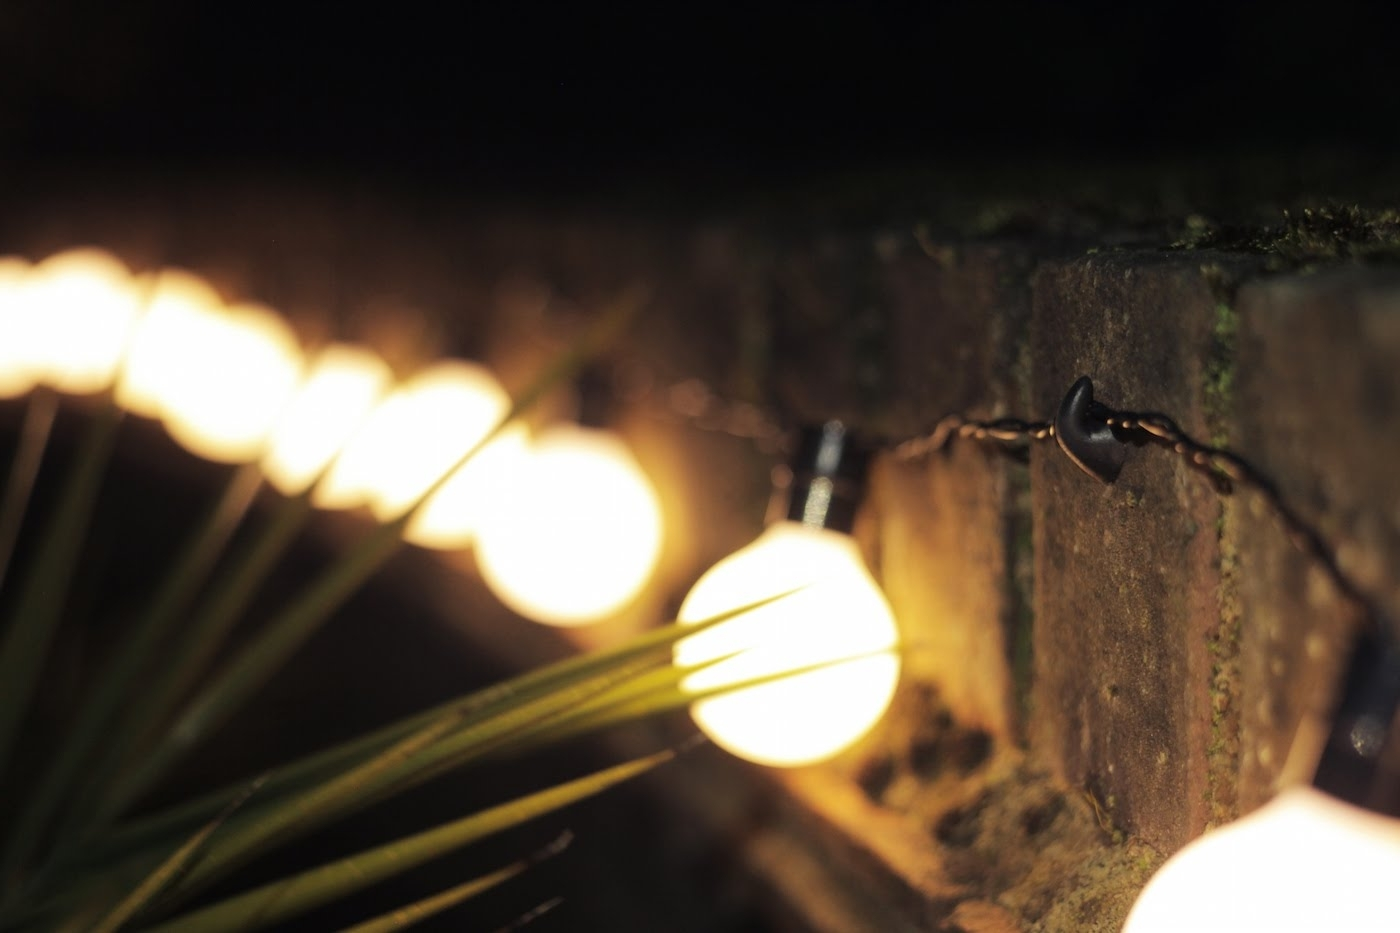 Diy : Easy Way Hang String Lights Outside Hanging Outdoor With Regard To Best And Newest Outdoor Hanging String Lights From Australia (Gallery 20 of 20)